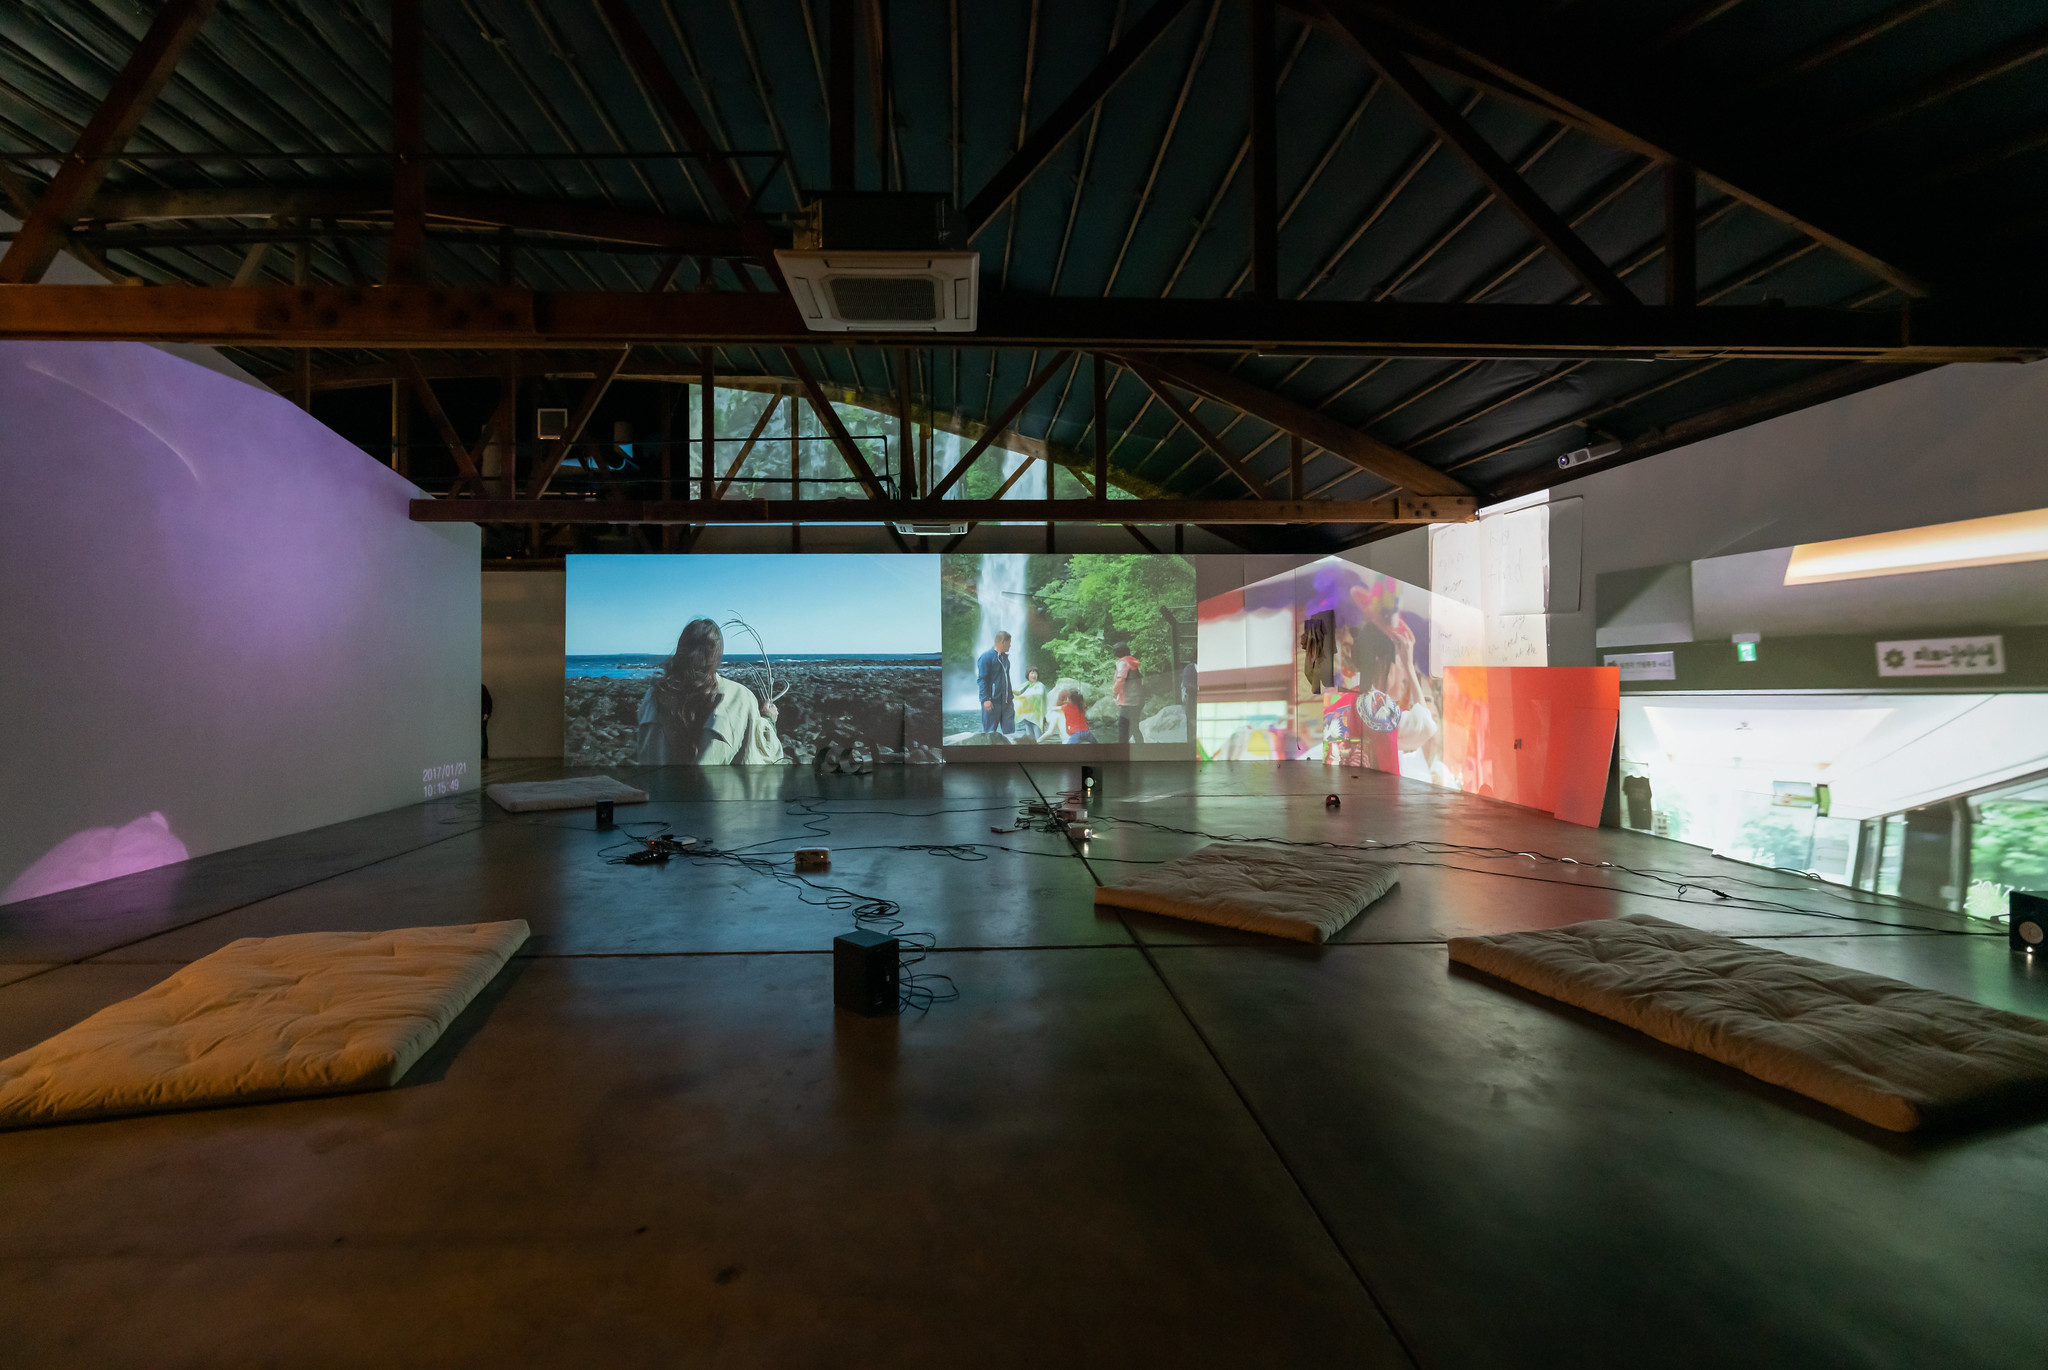 Curator in Residence - The Curator in Residence program is the first of its kind in the region. Through the CiR program, audiences are inspired by viewing local, national, and international work in their region and the arts community establishes new connections throughout the world.